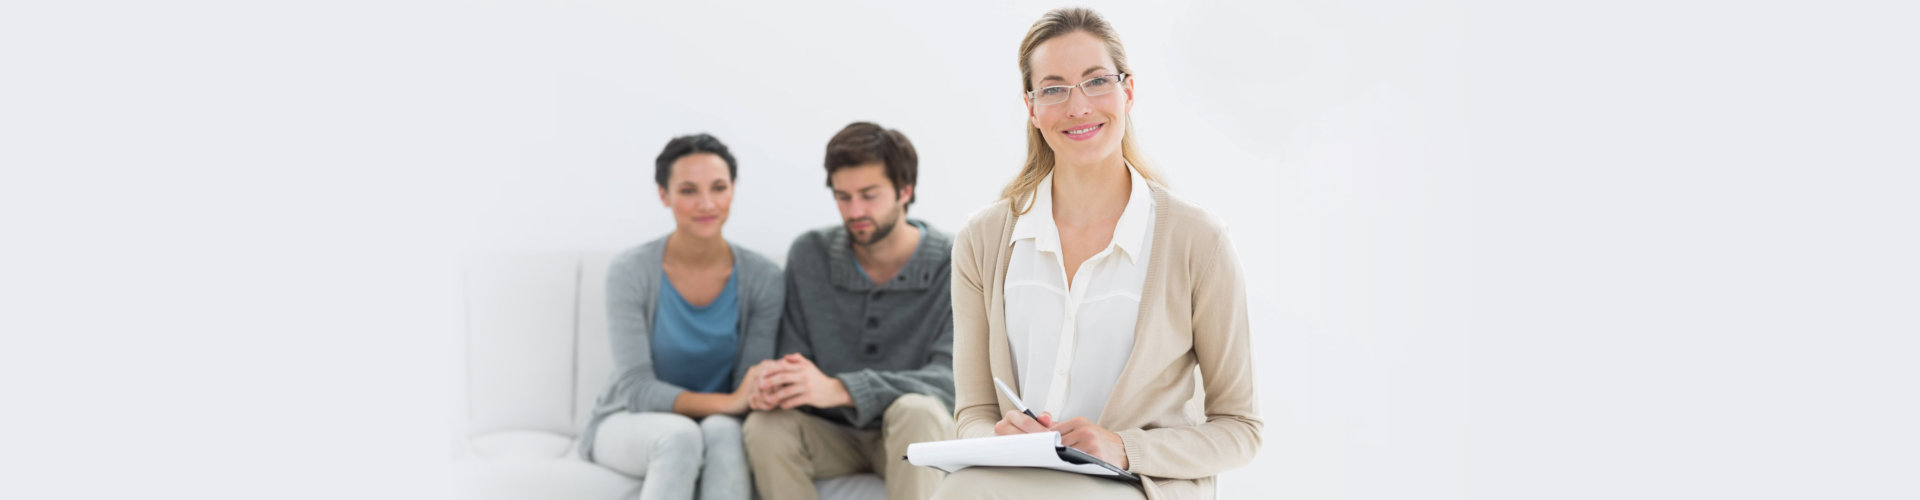 happy therapist with couple on her background